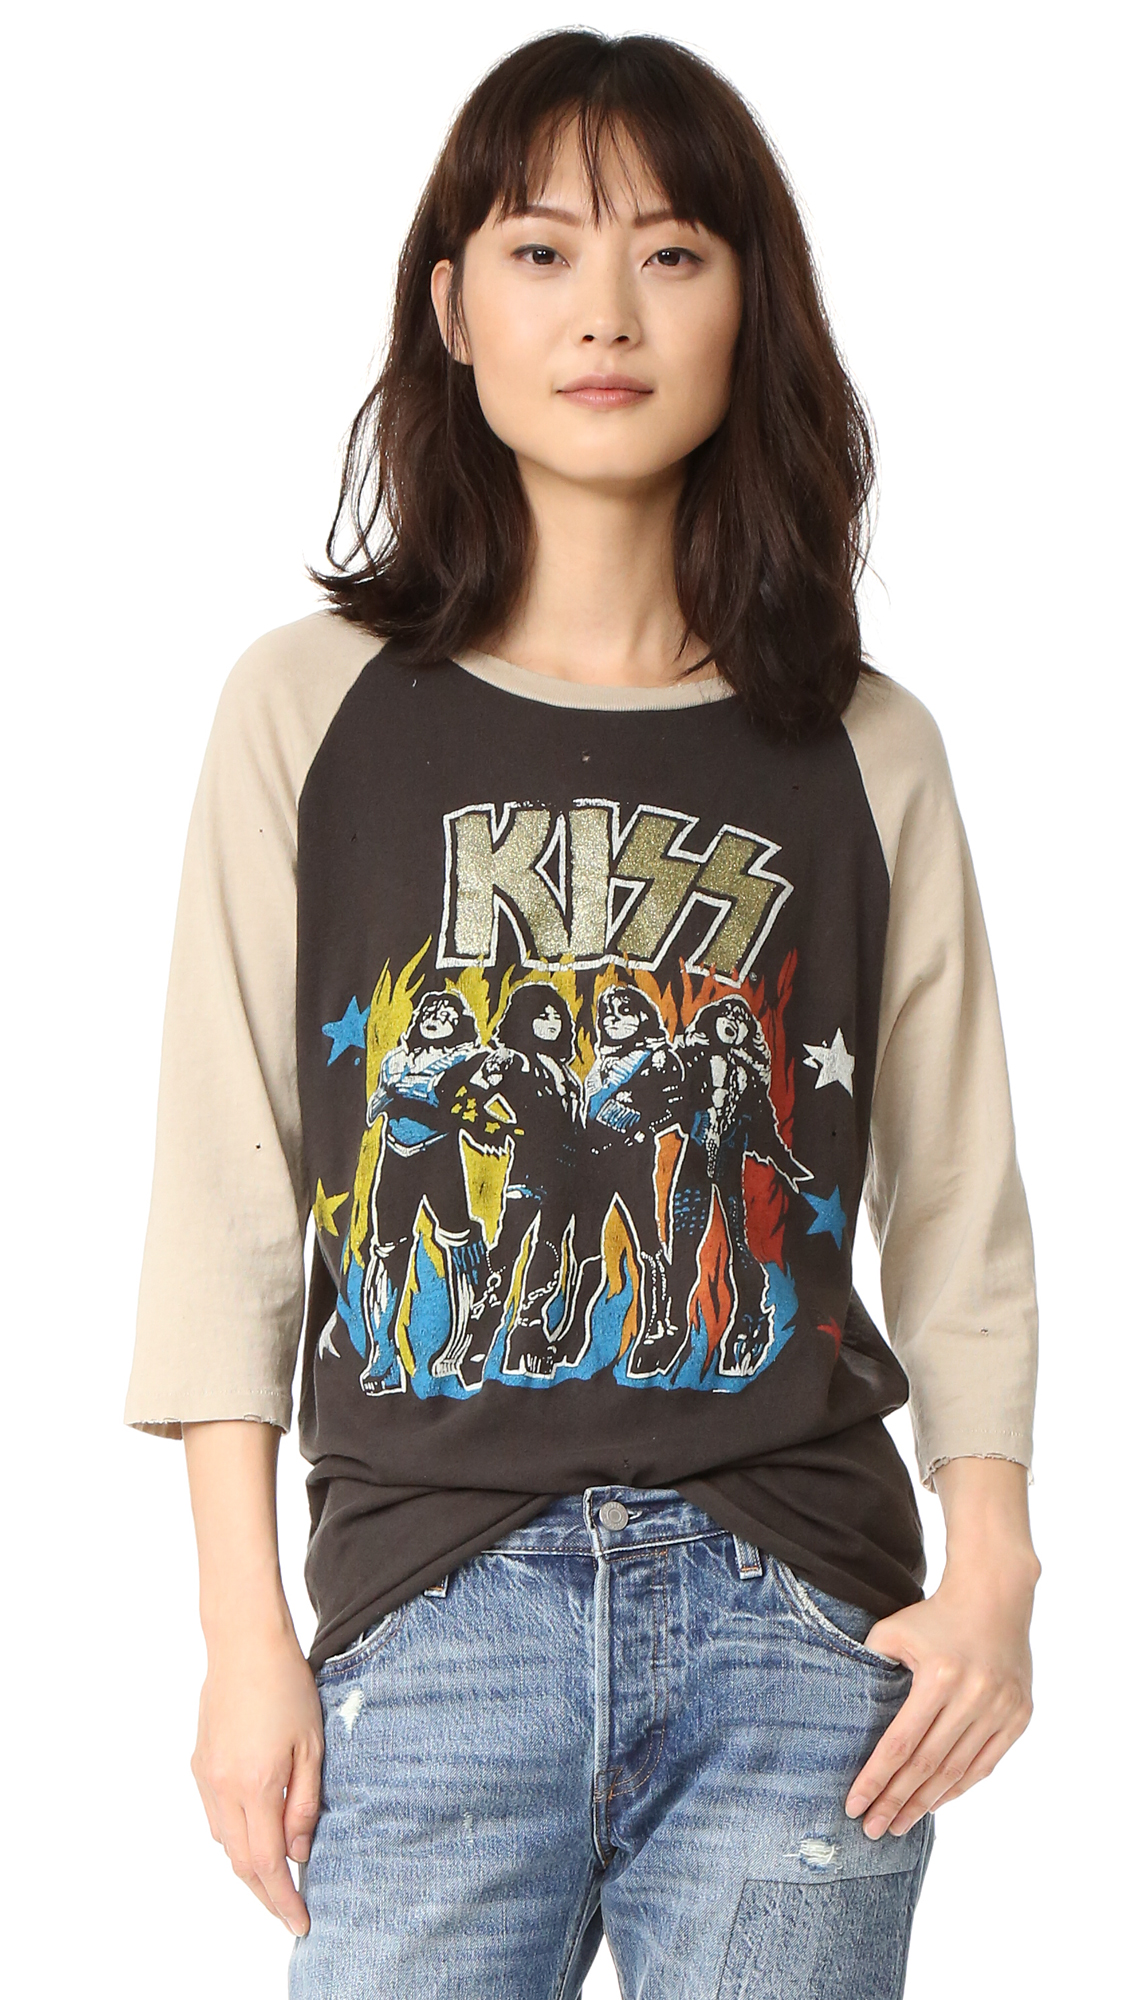 This soft, well traveled MADEWORN ROCK tee is detailed with a faded screenprint of KISS in the front. Tiny holes add to the vintage look. Serged, rounded hem. 3/4 raglan sleeves. Fabric: Soft, worn jersey. 100% cotton. Wash